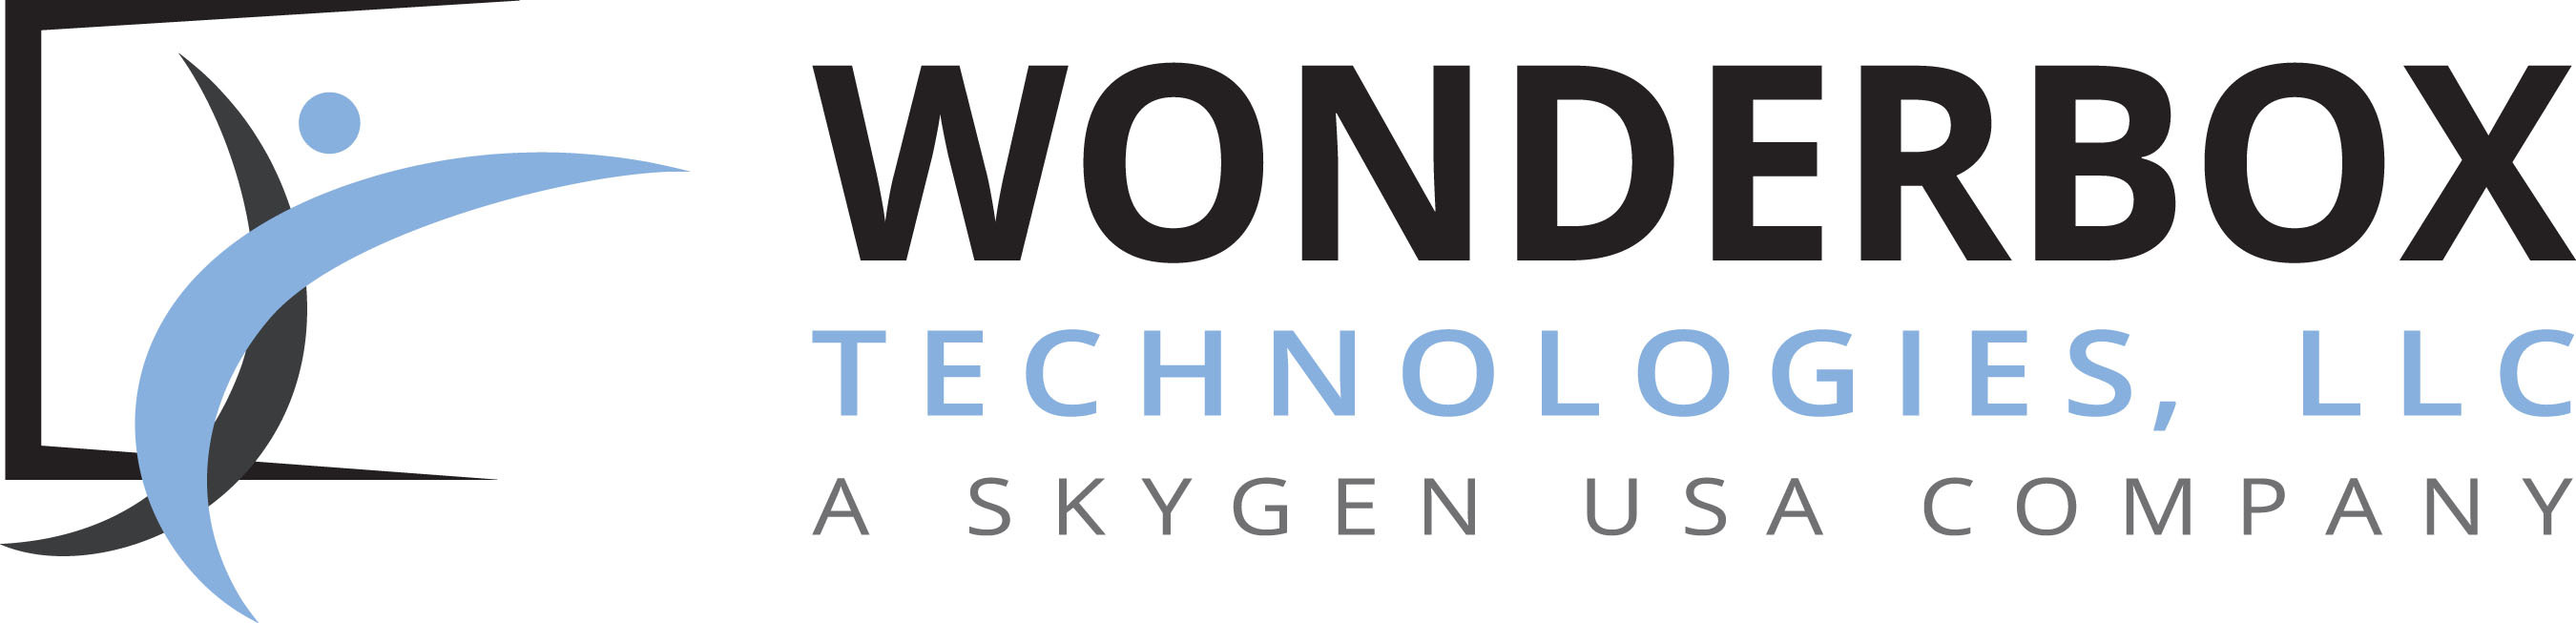 Wonderbox Technologies, part of the SKYGEN USA family of companies, is a distinguished, agile software company ...